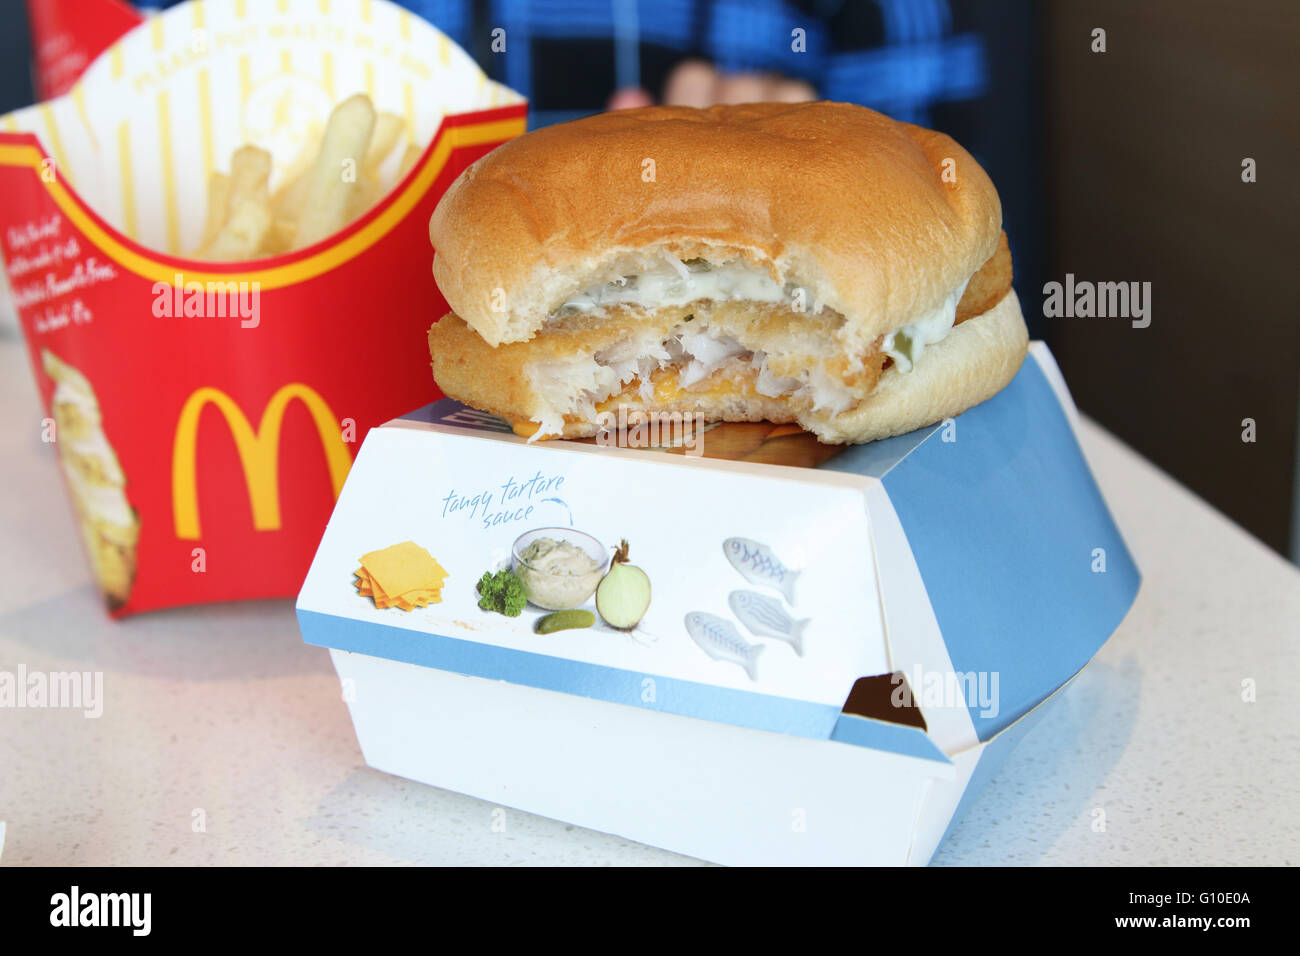 Mcdonald 39 s fries and filet o fish burger with a bite for Filet o fish